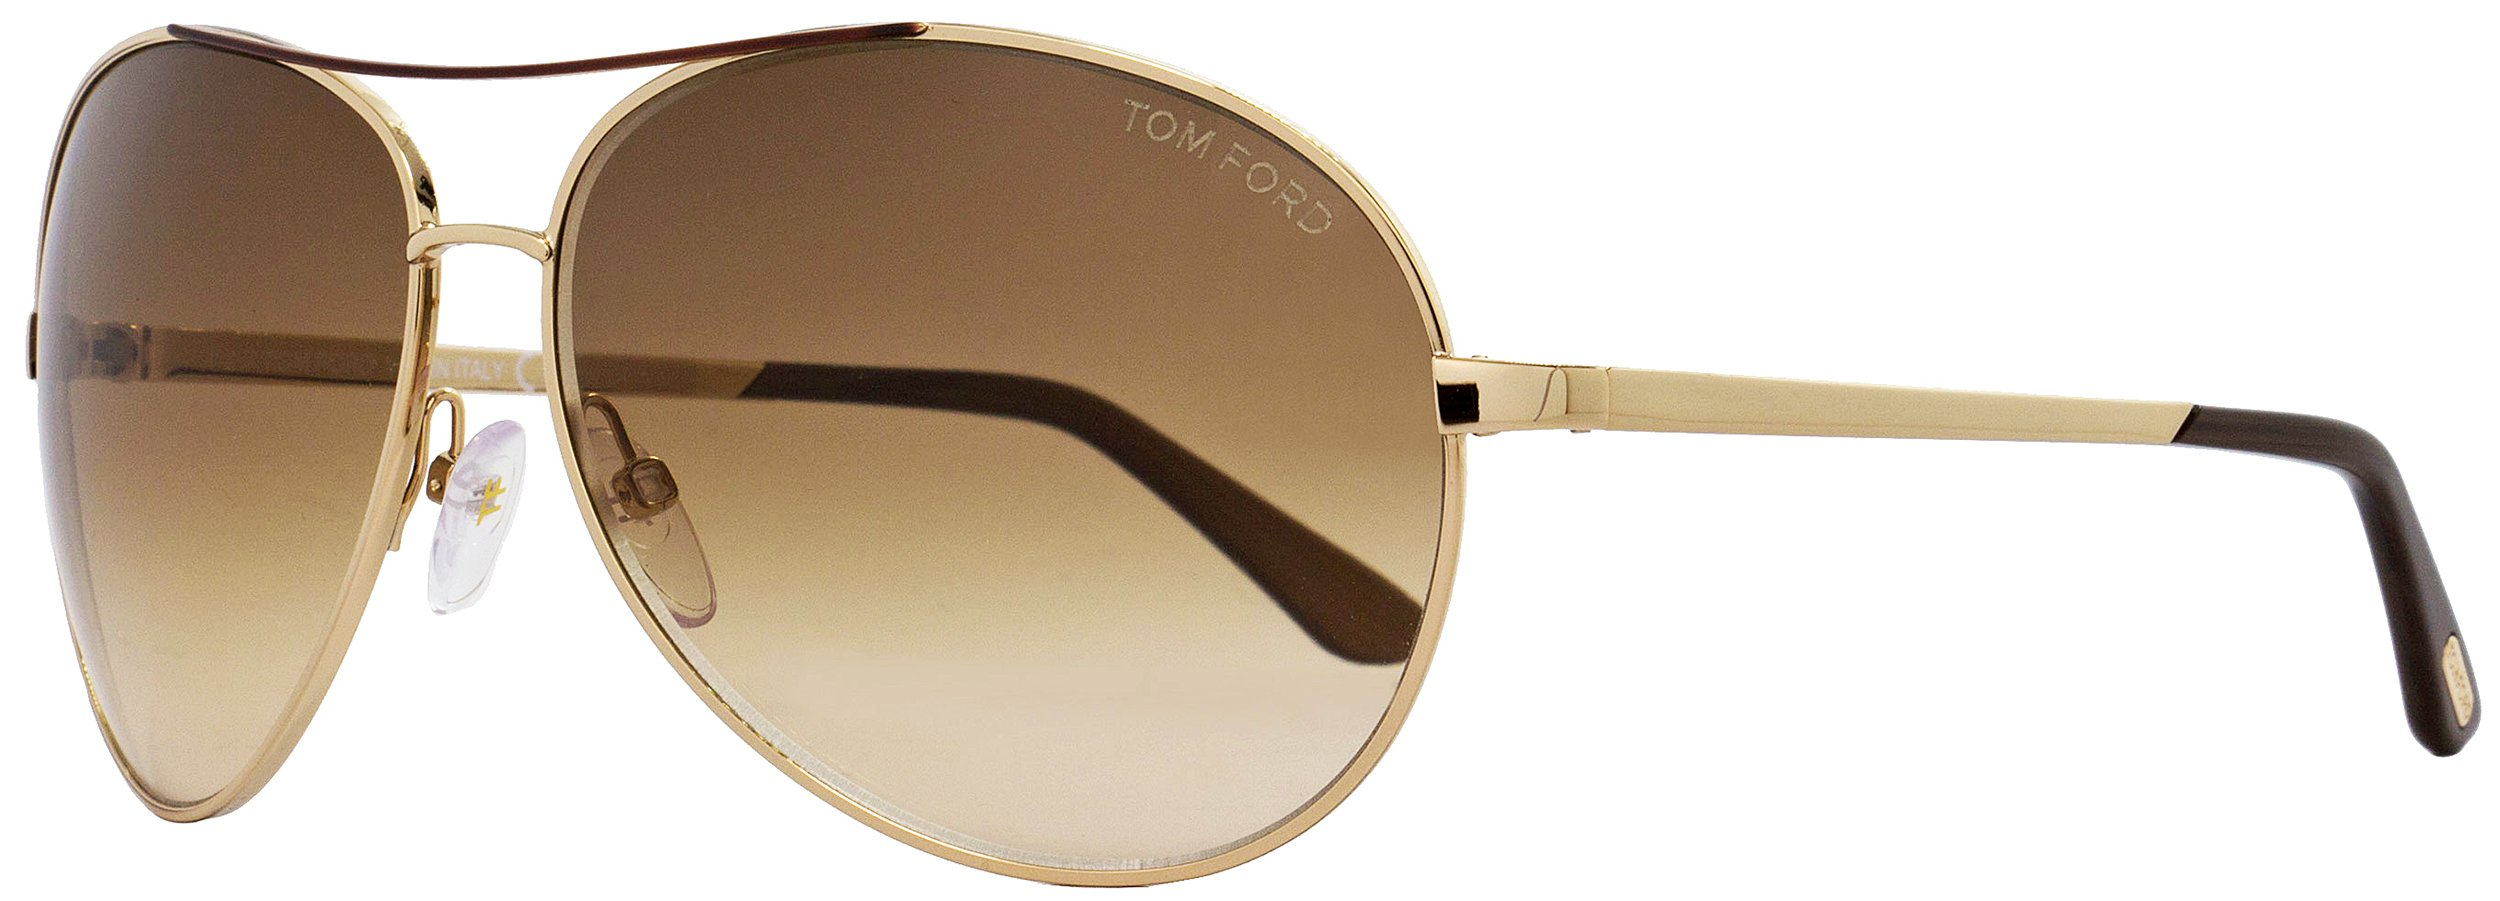 TOM FORD SUNGLASSES FT0035 CHARLES GOLD TF35 772